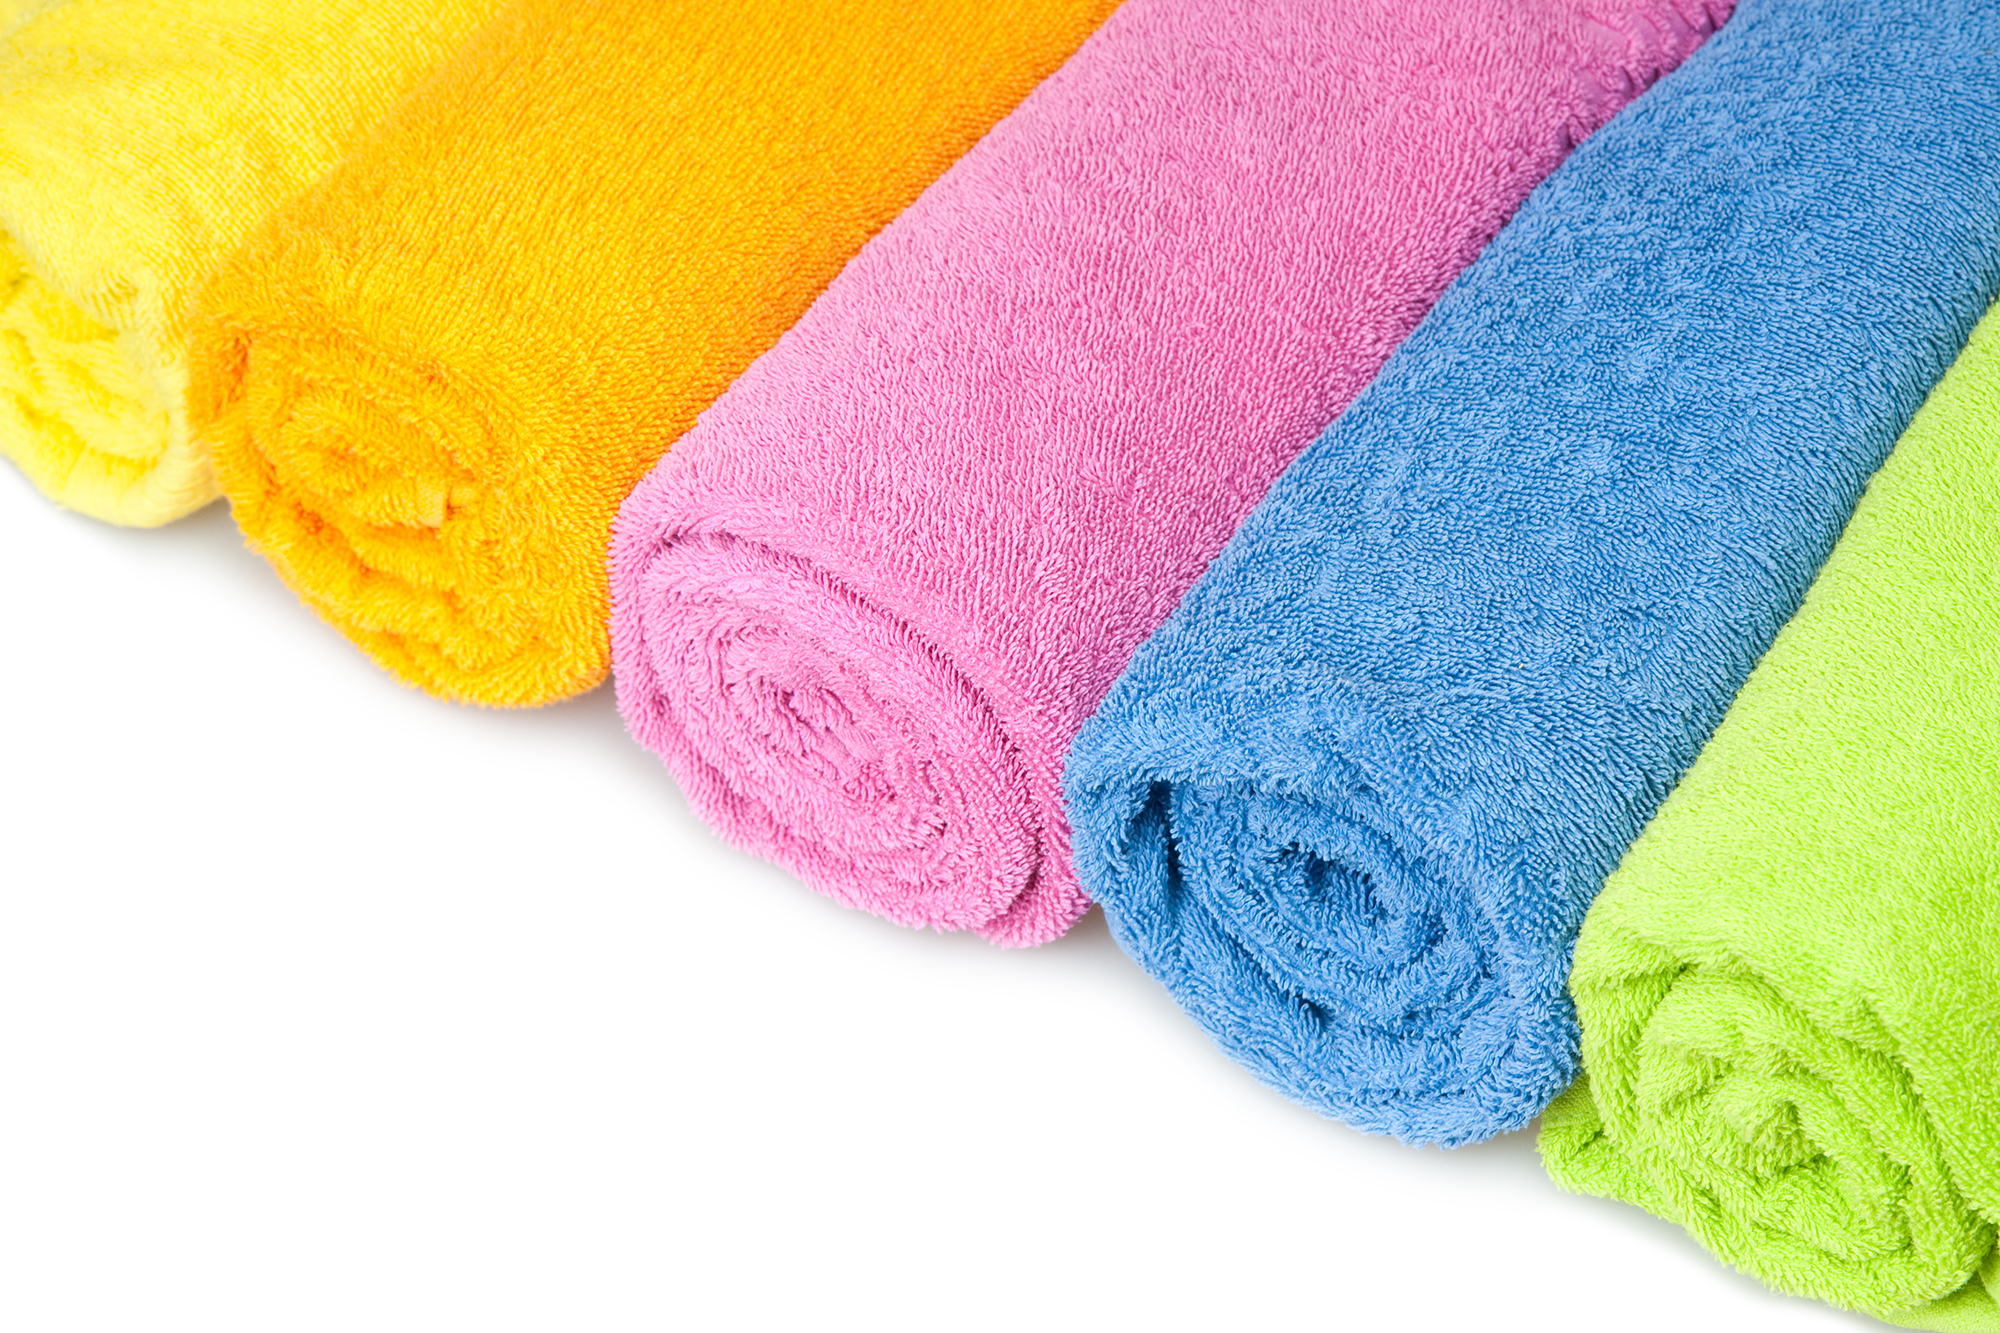 5 secrets to keeping your towels fluffy